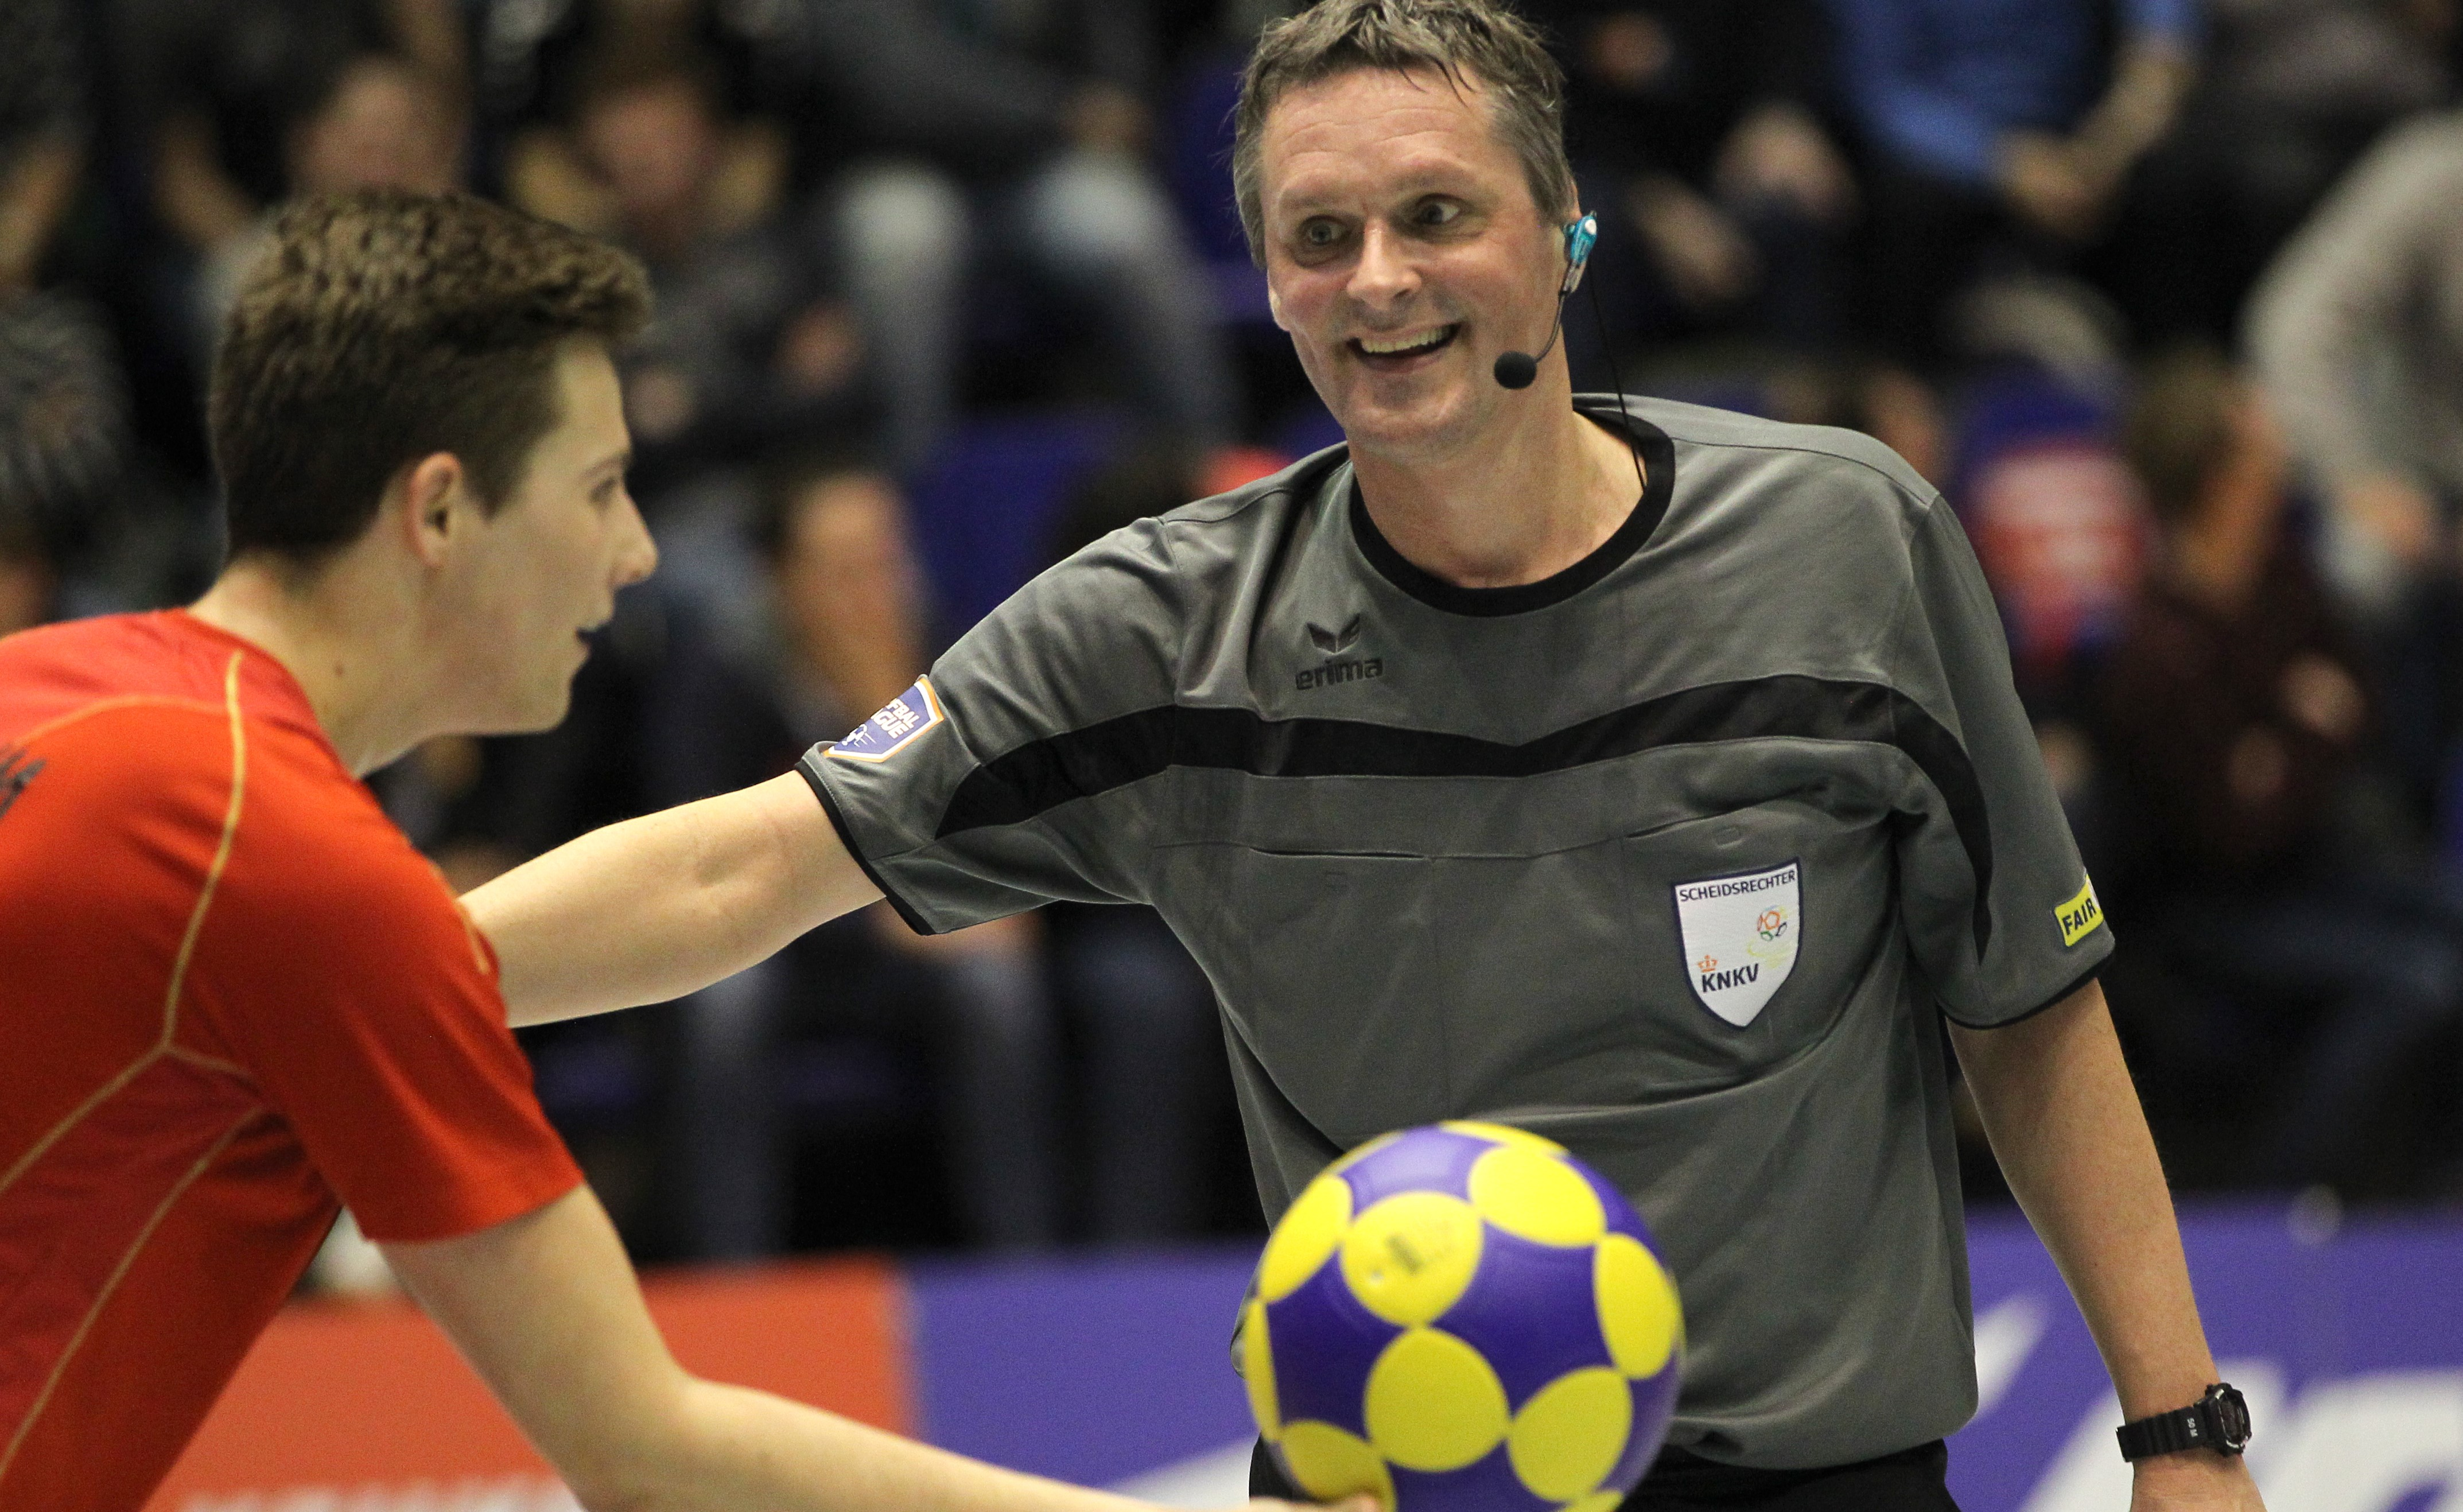 wireless-communication-system-for-referees-in-sports-axiwi